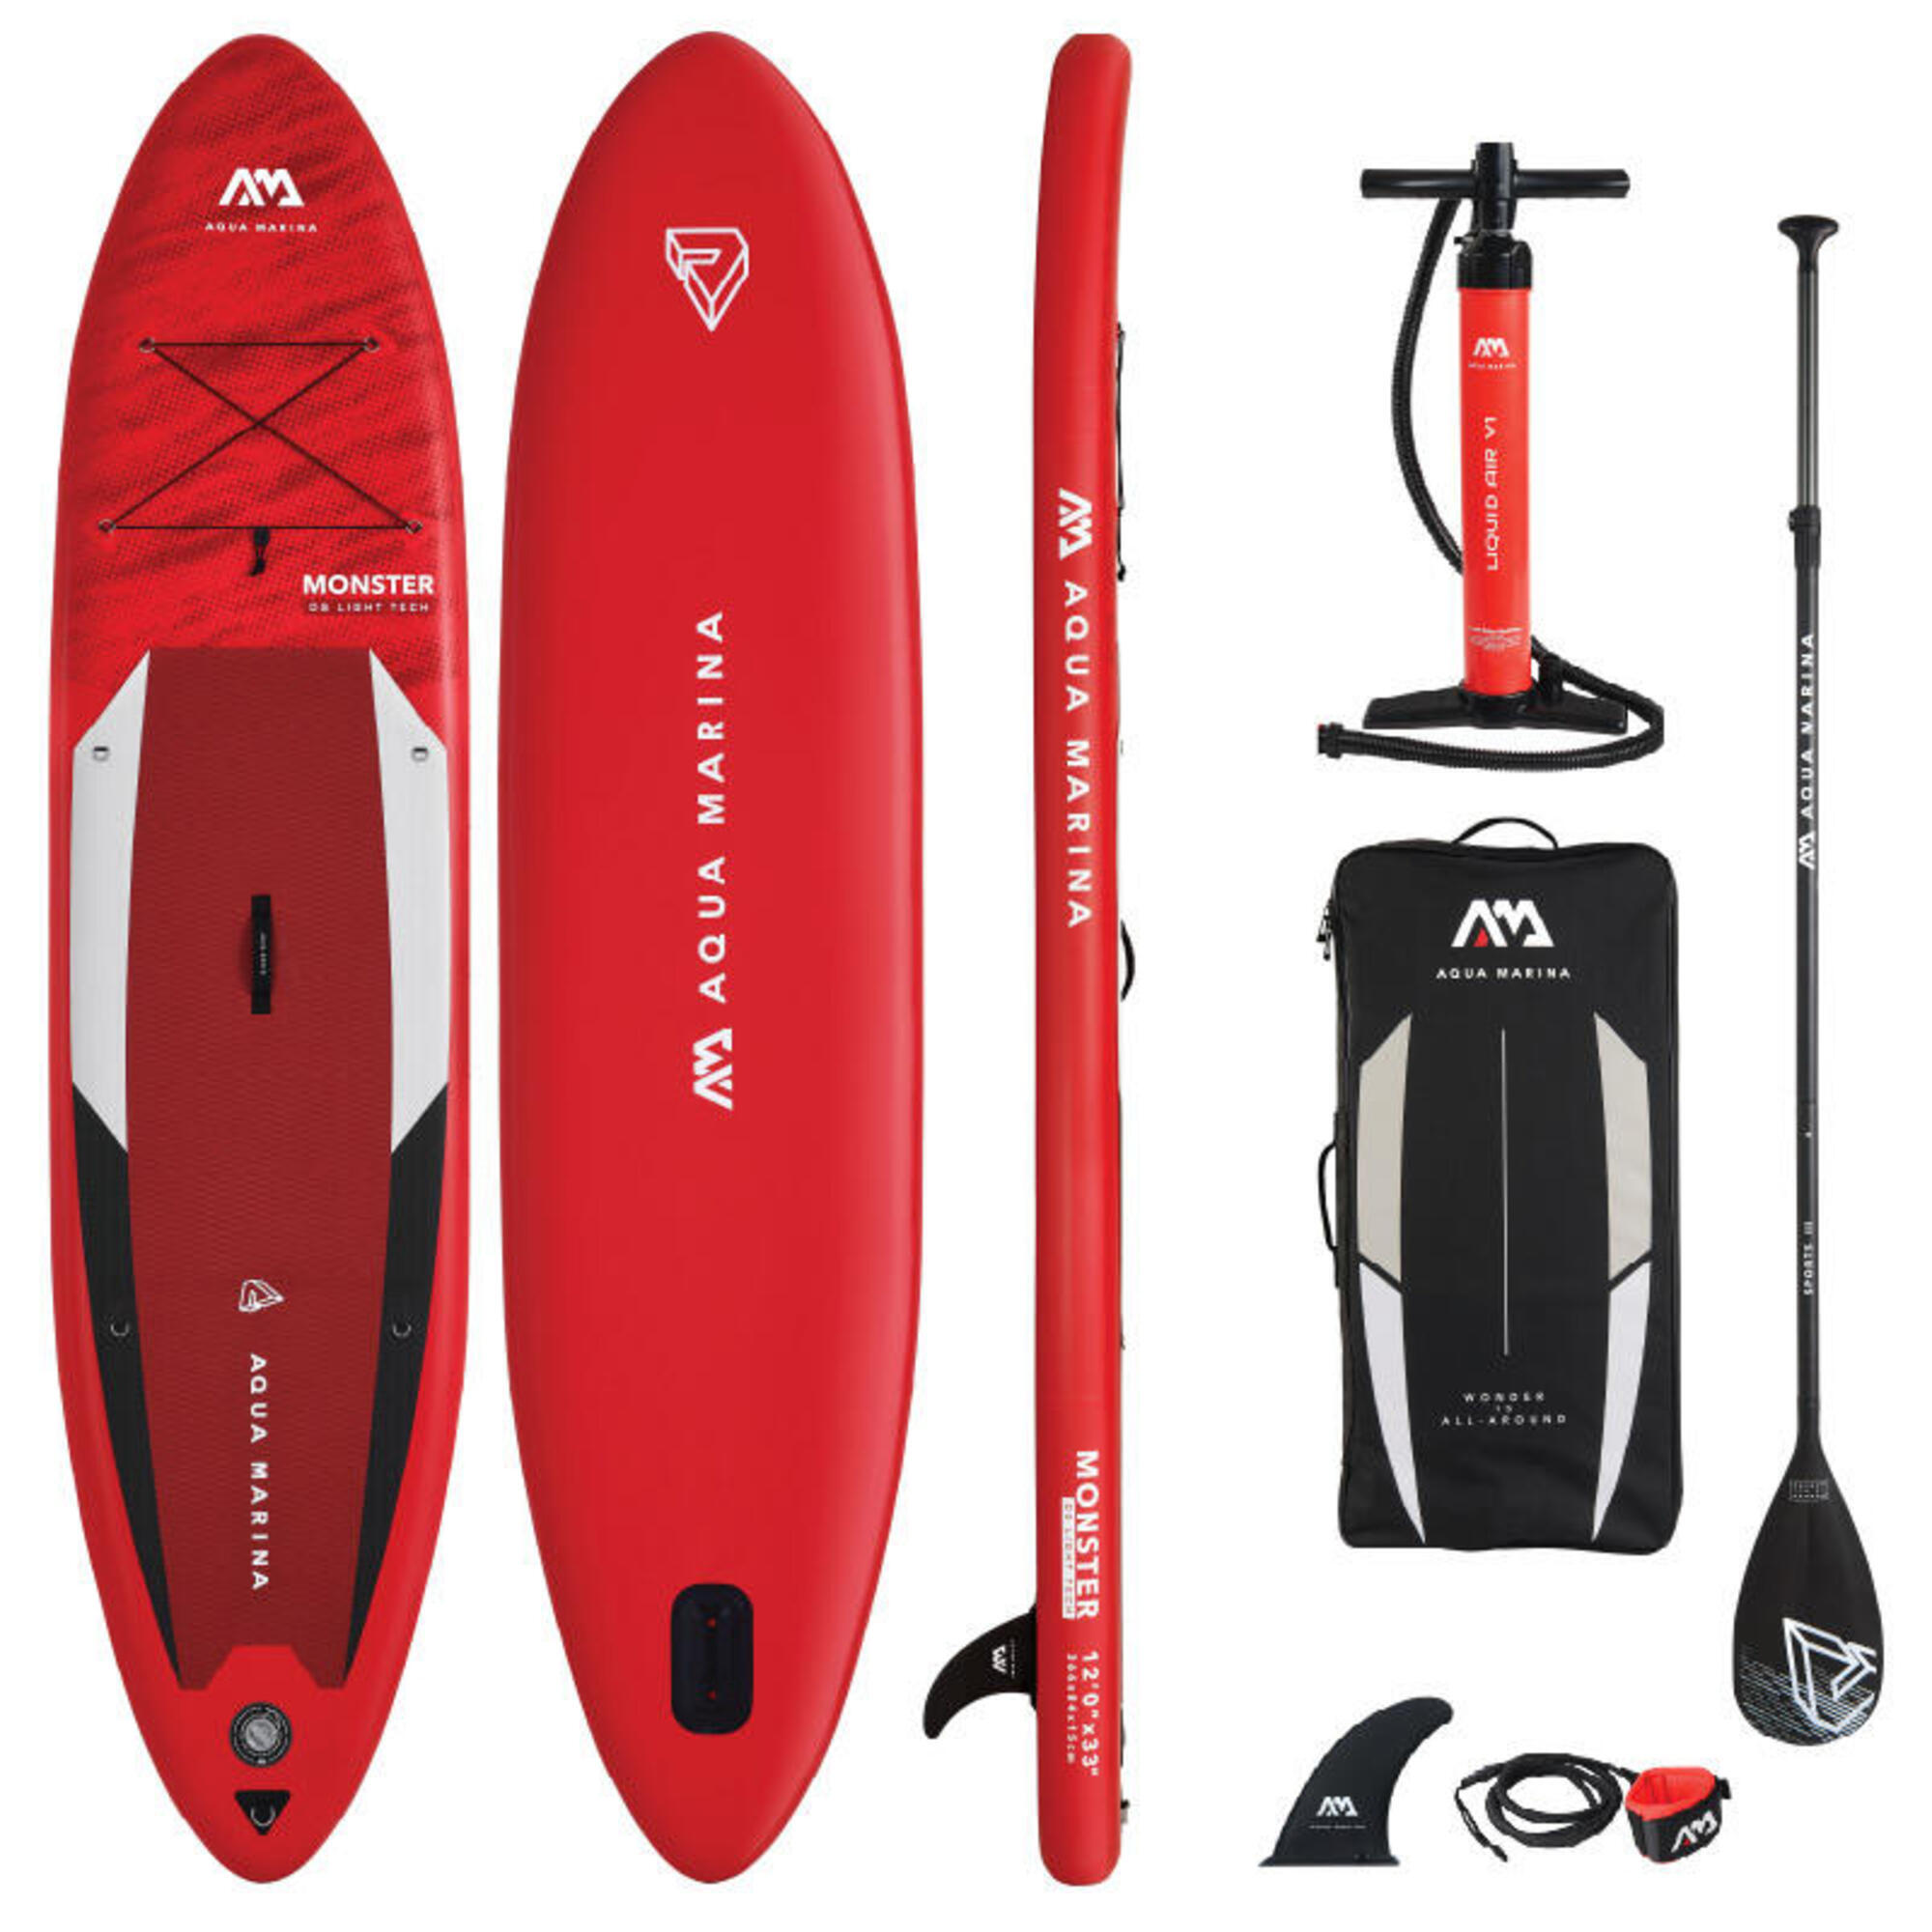 Aqua Marina Monster 12.0 / 366cm Inflatable Stand Up Paddleboard Package